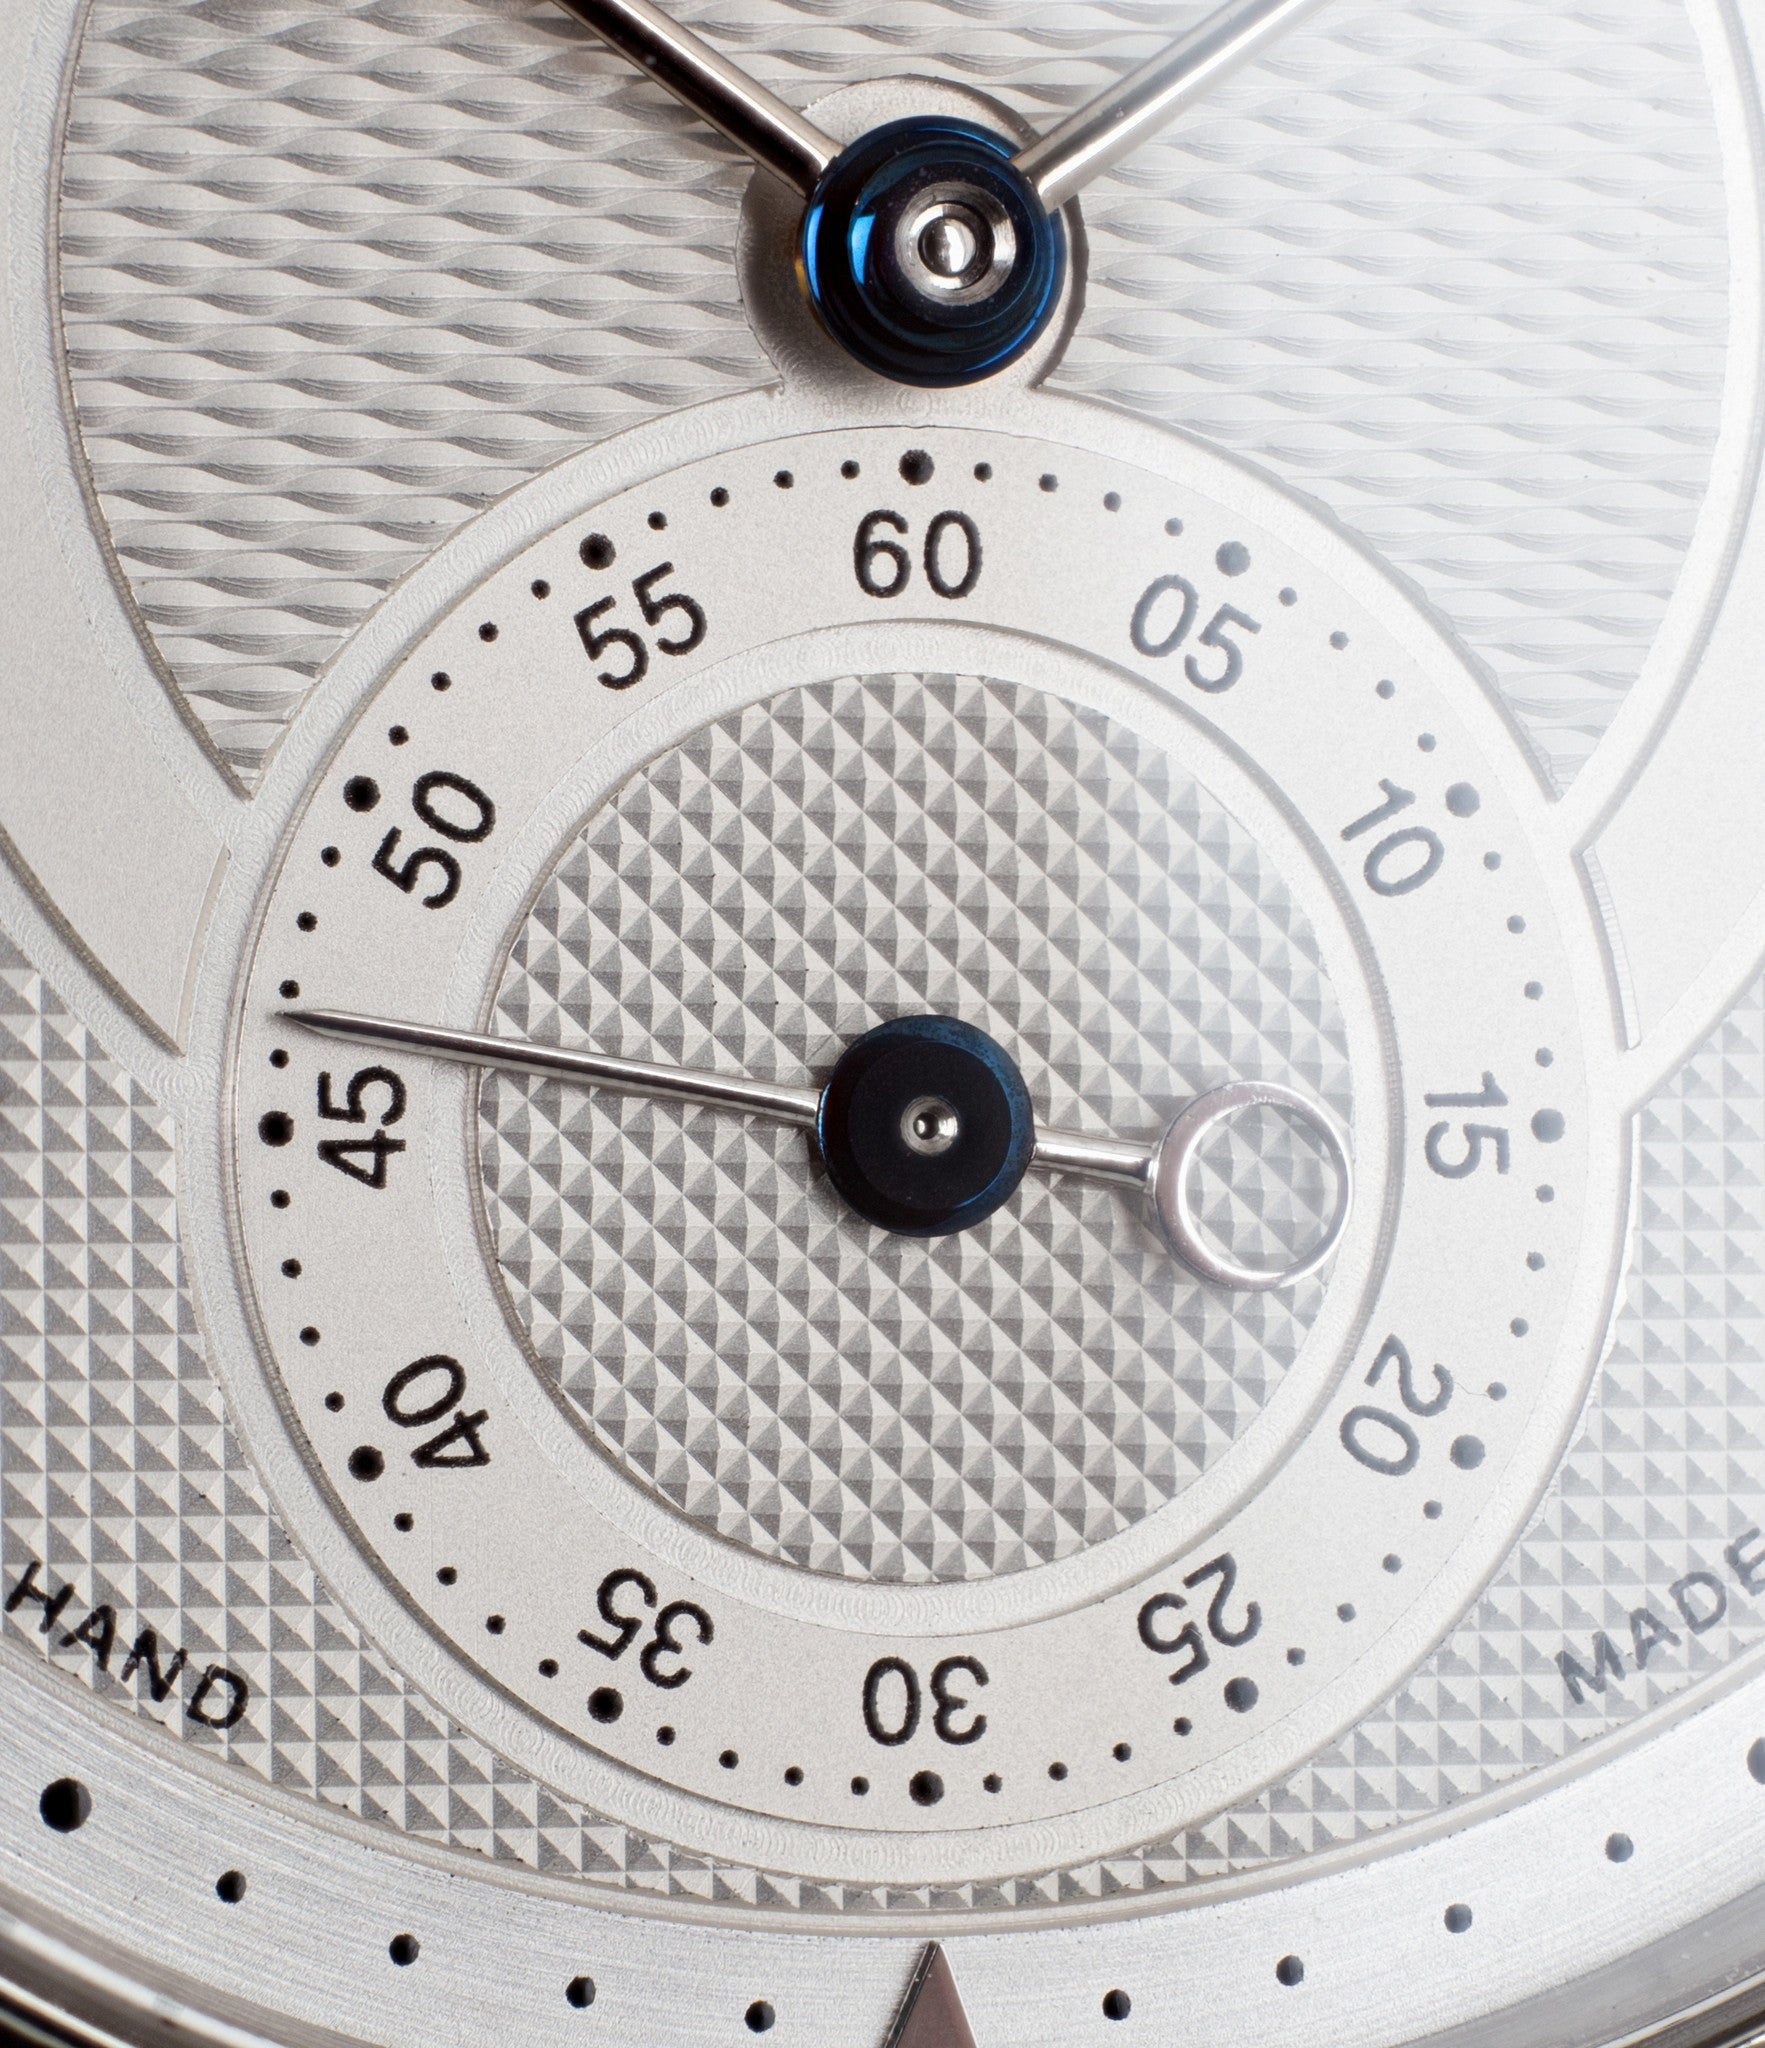 buy Voutilainen Observatorie rare hand-made time-only white gold watch from independent watchmaker online for sale WATCH XCHANGE London with box and papers and blue hands and guilloche dial sub-seconds dial